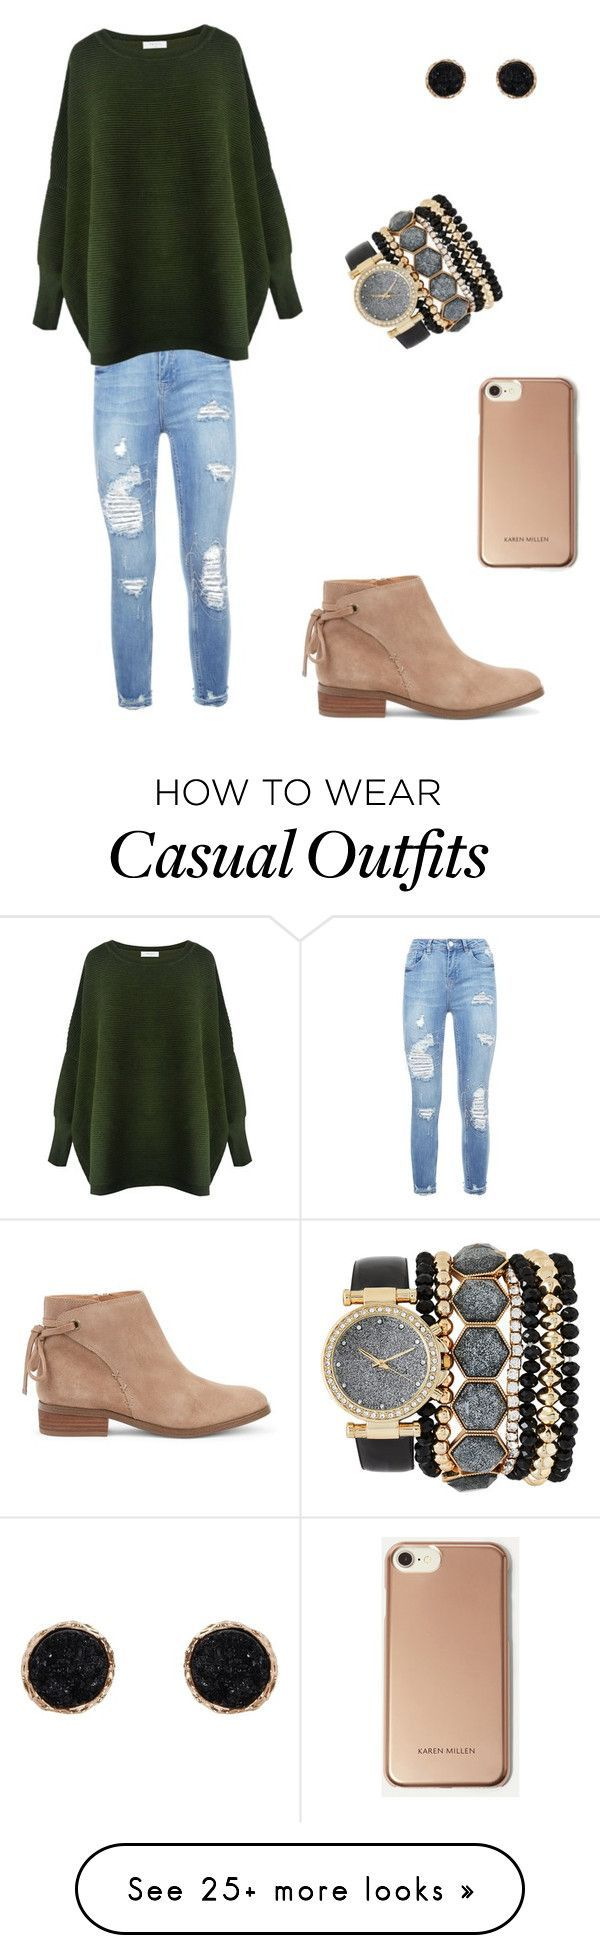 """Casual Night Out"" by kennedu on Polyvore featuring Paisie, Sole Society, Jessica Carlyle, Humble Chic and Karen Millen #polyvoreoutfits"